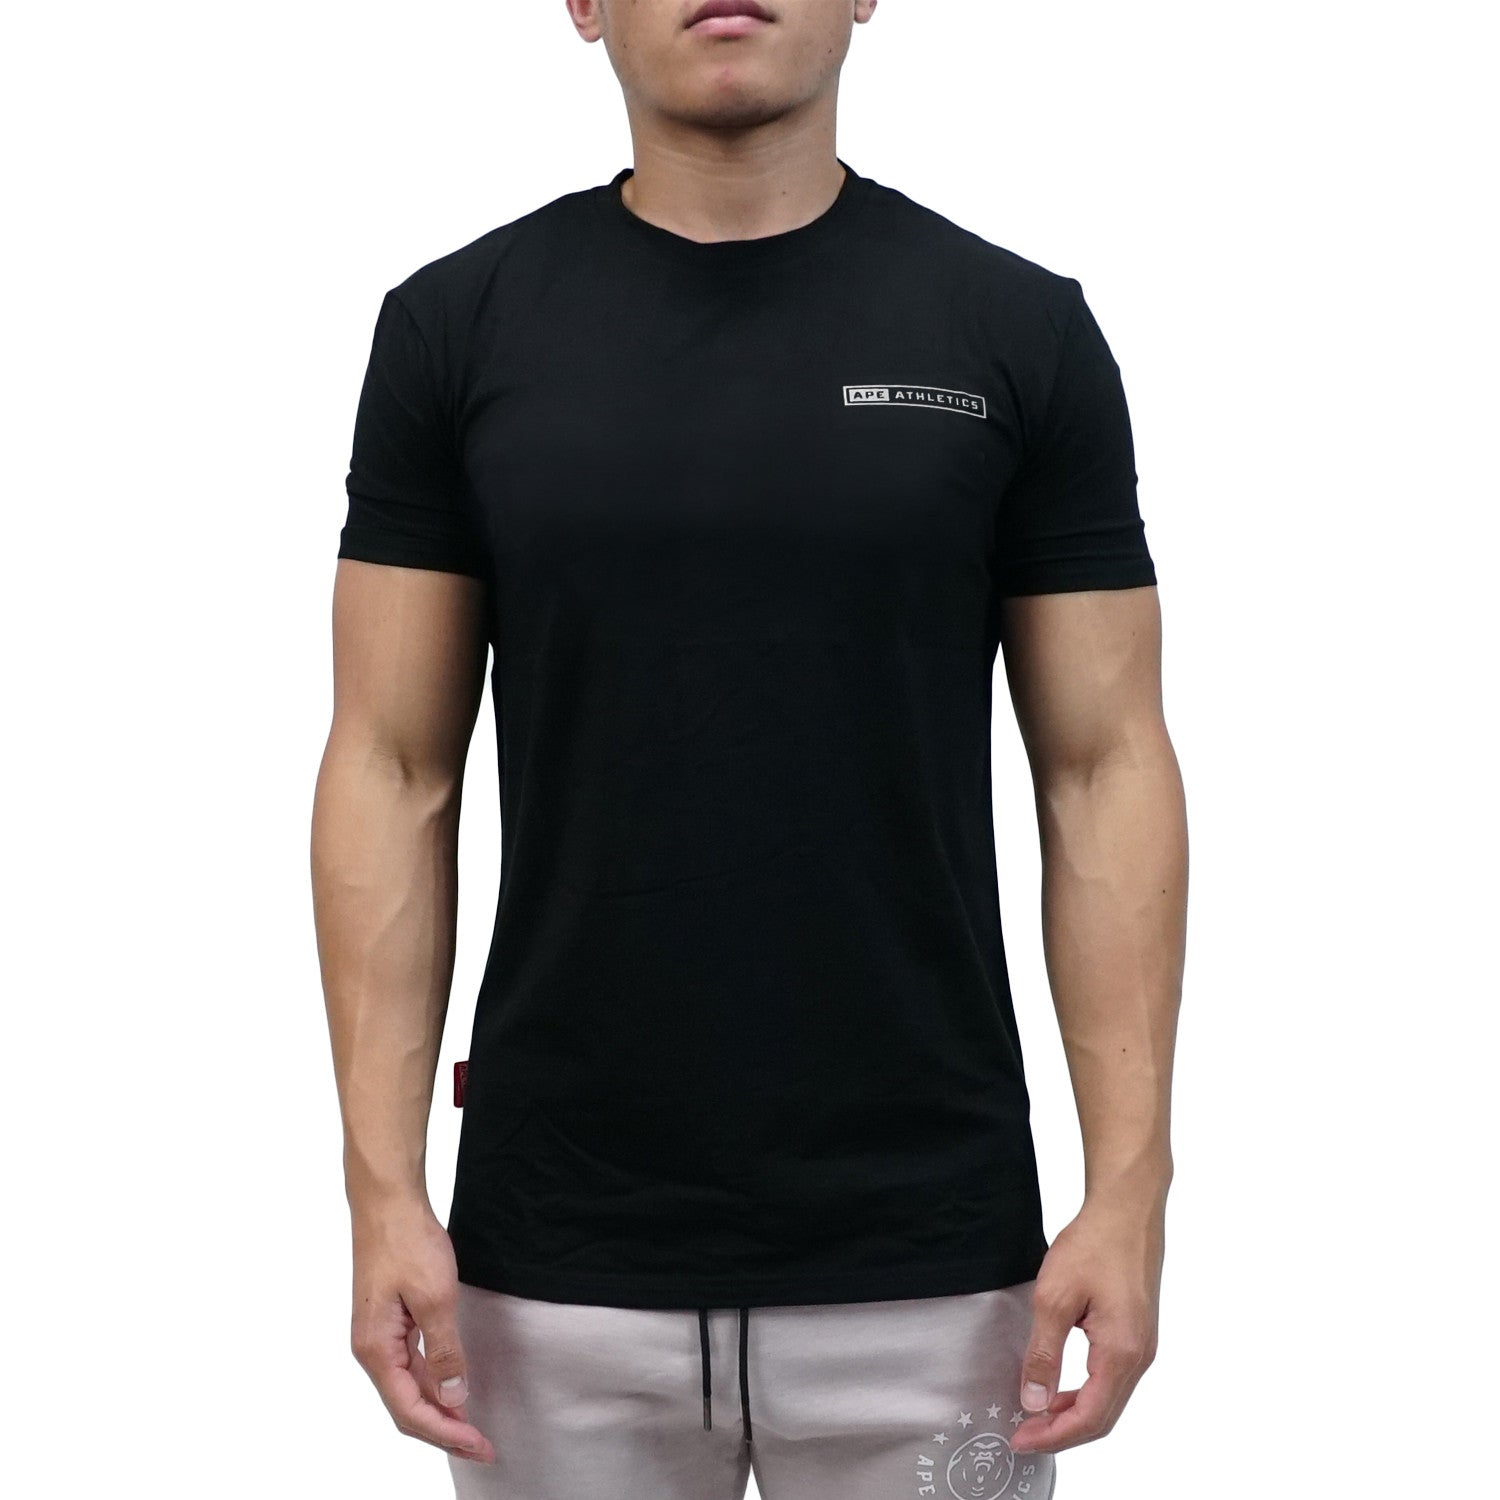 Lifestyle Tshirt - ApeAth Black